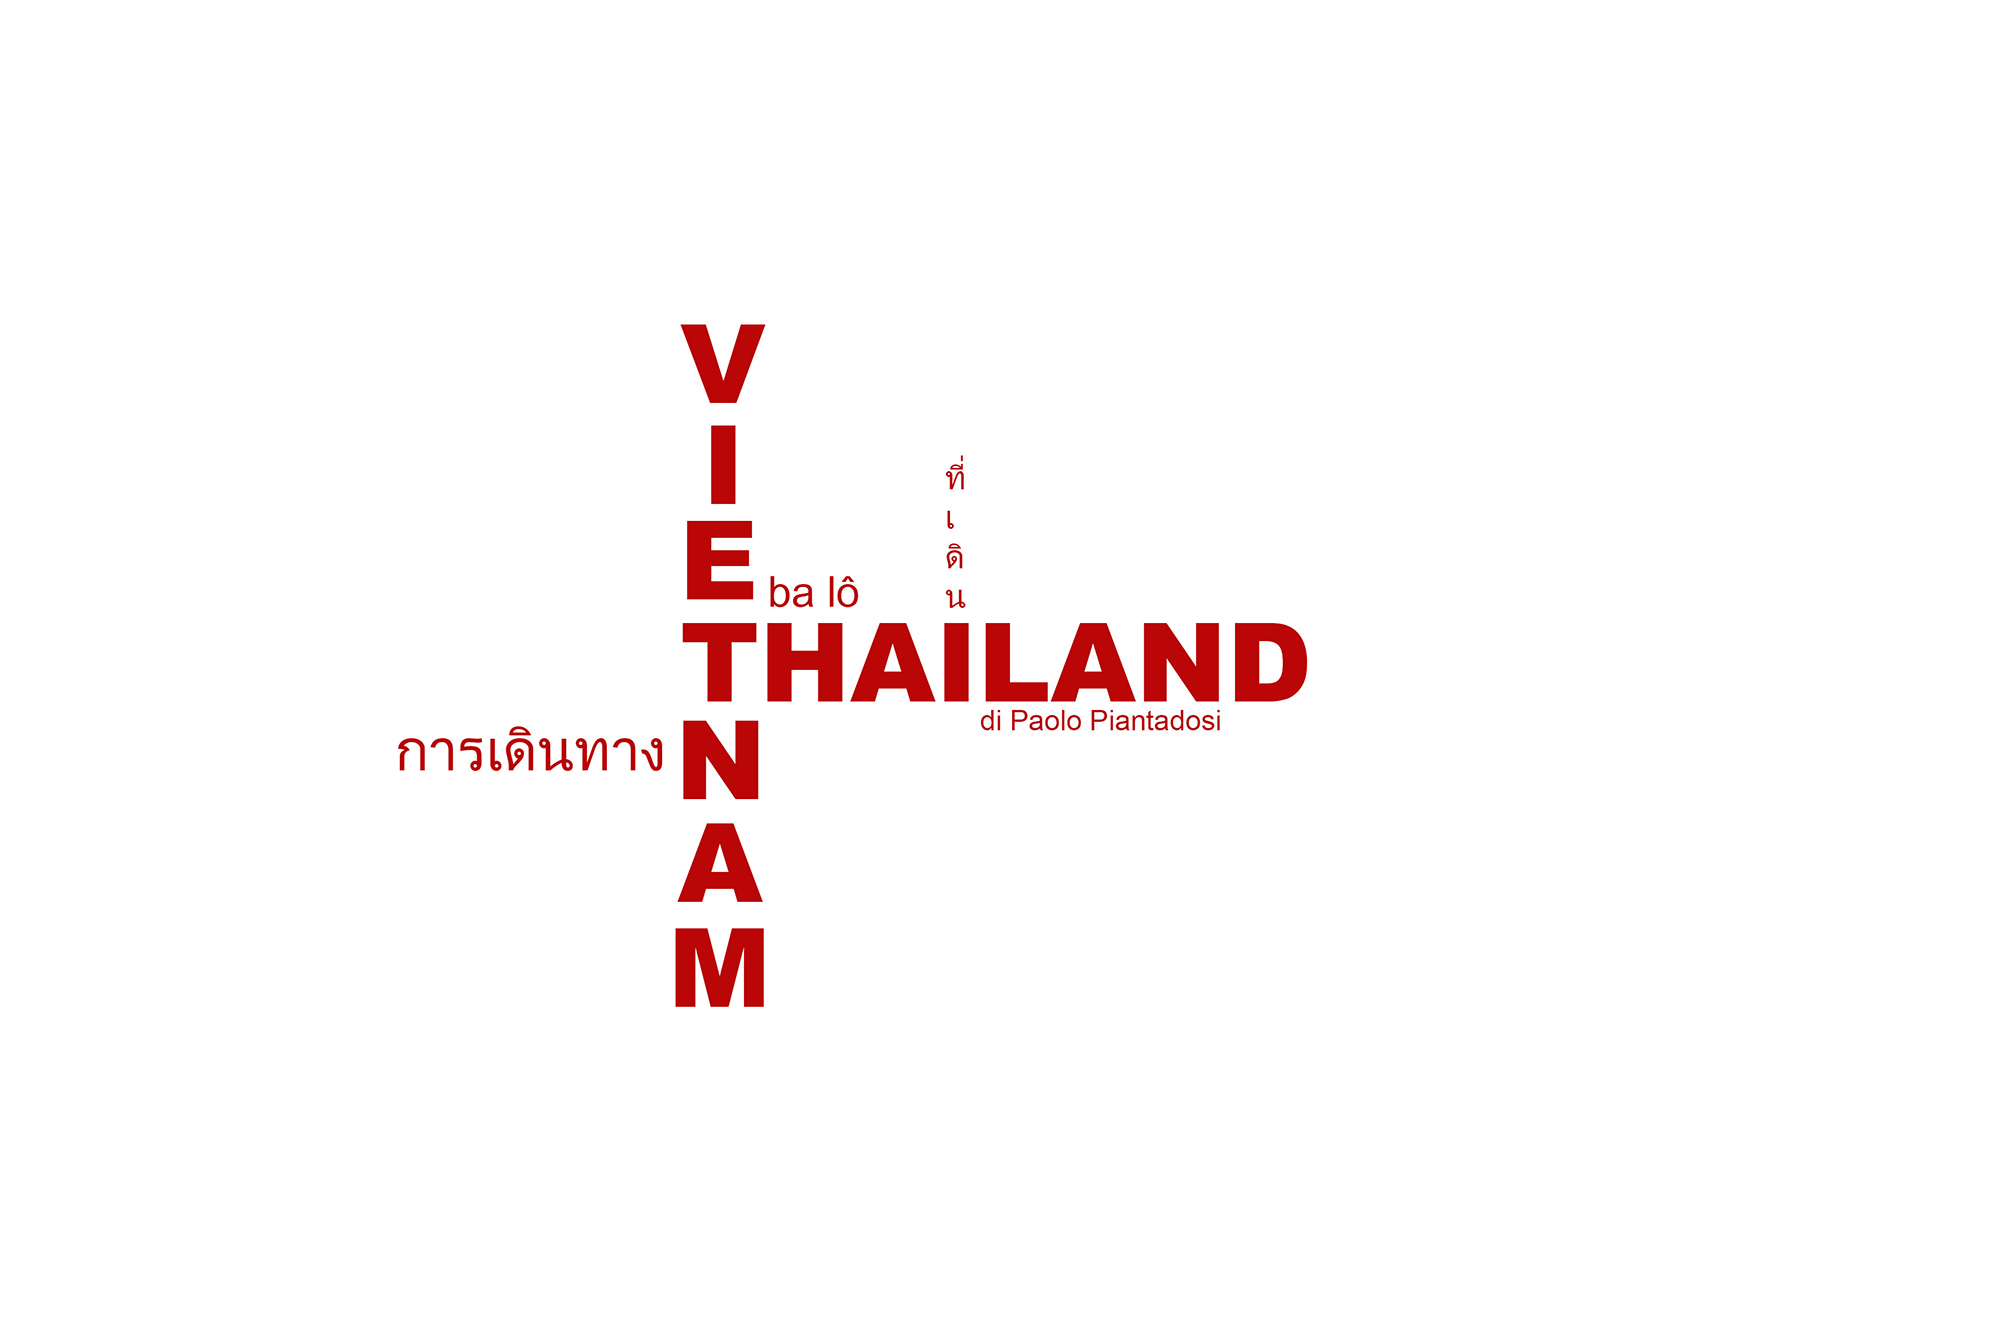 thaiviet project